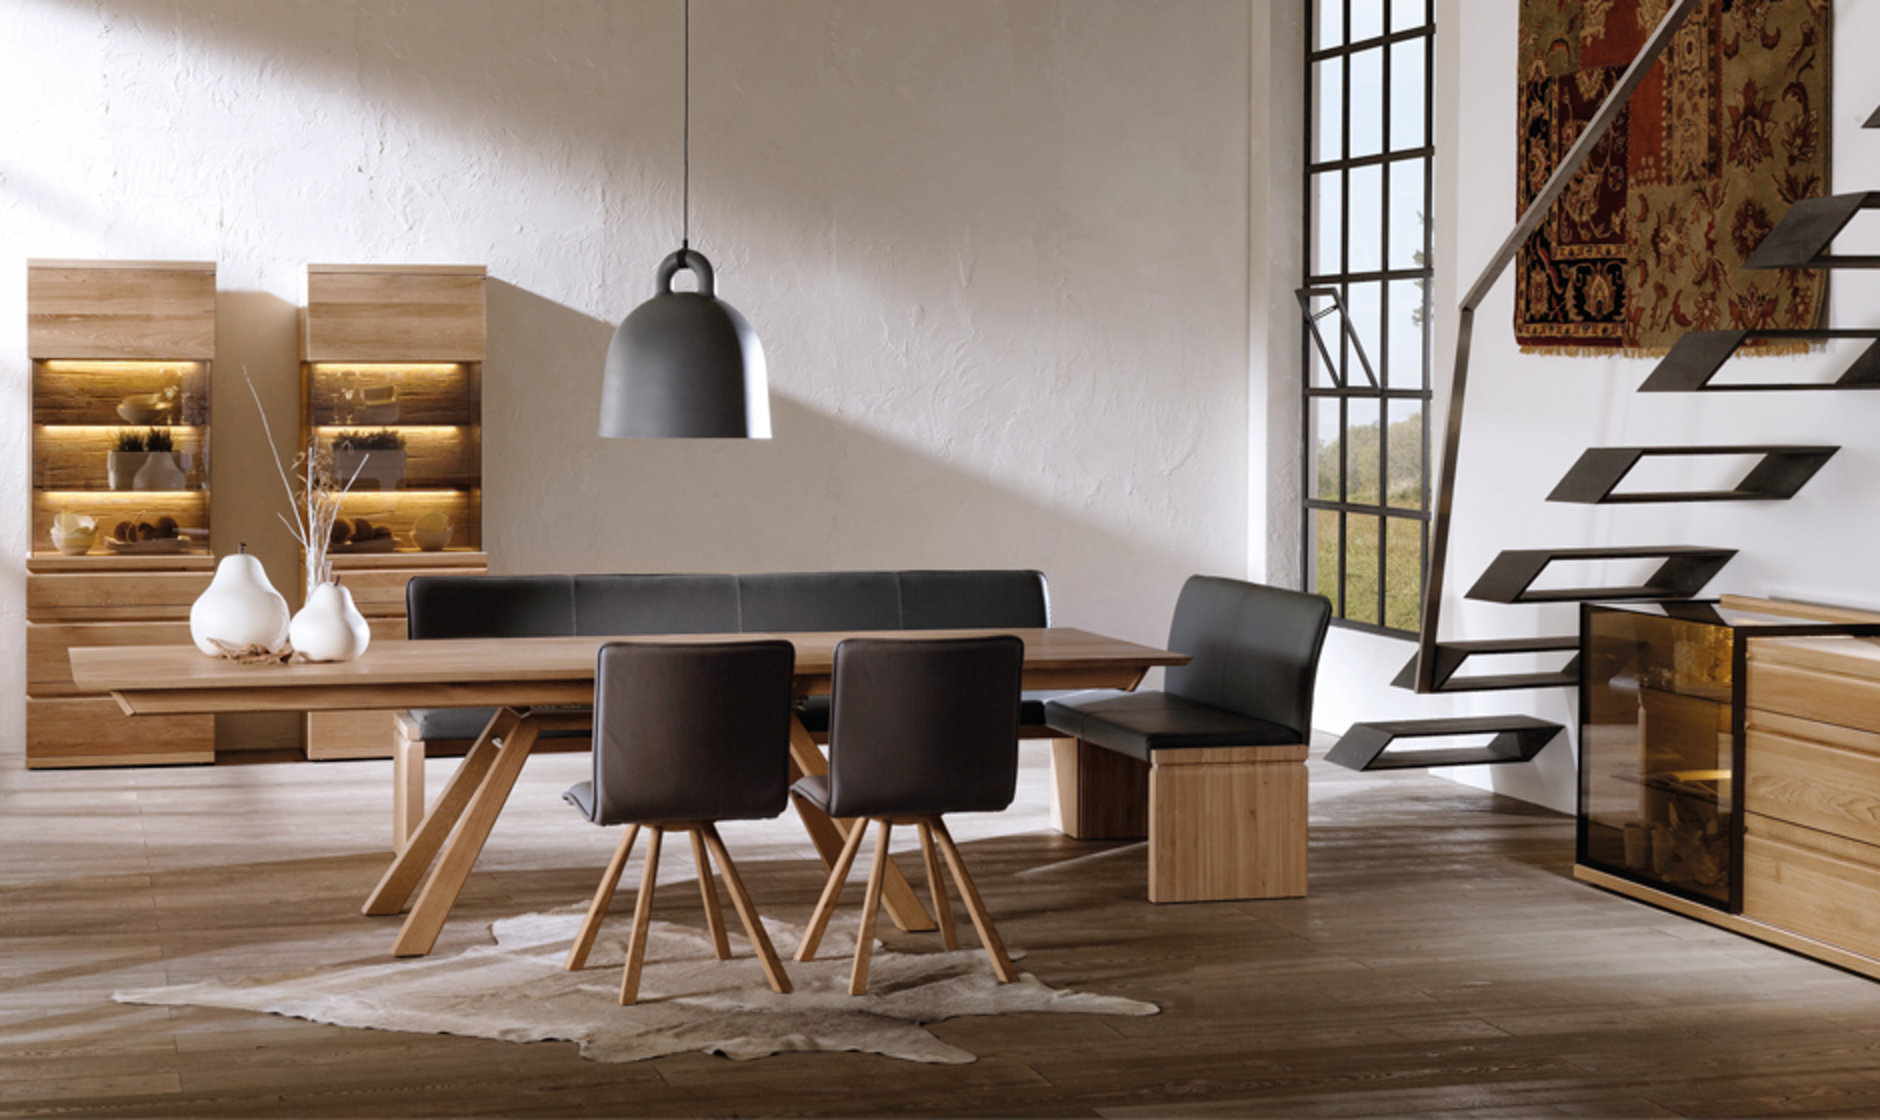 csm gallery speisen speisezimmer wildeiche segp4 f16555de37 m bel arenz. Black Bedroom Furniture Sets. Home Design Ideas